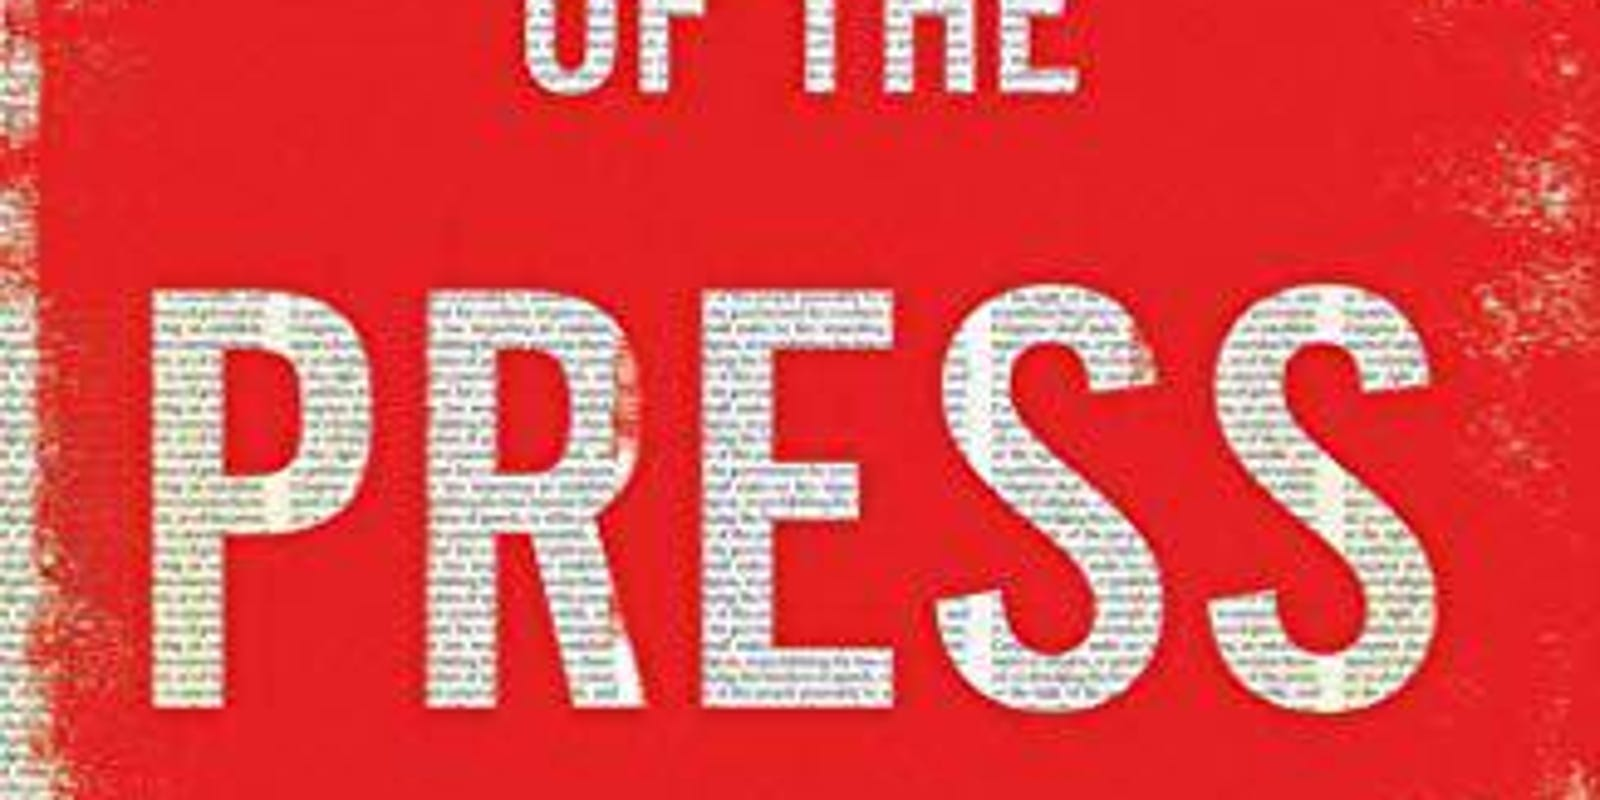 Best-selling books: 'Where the Crawdads Sing,' 'Unfreedom of the Press'